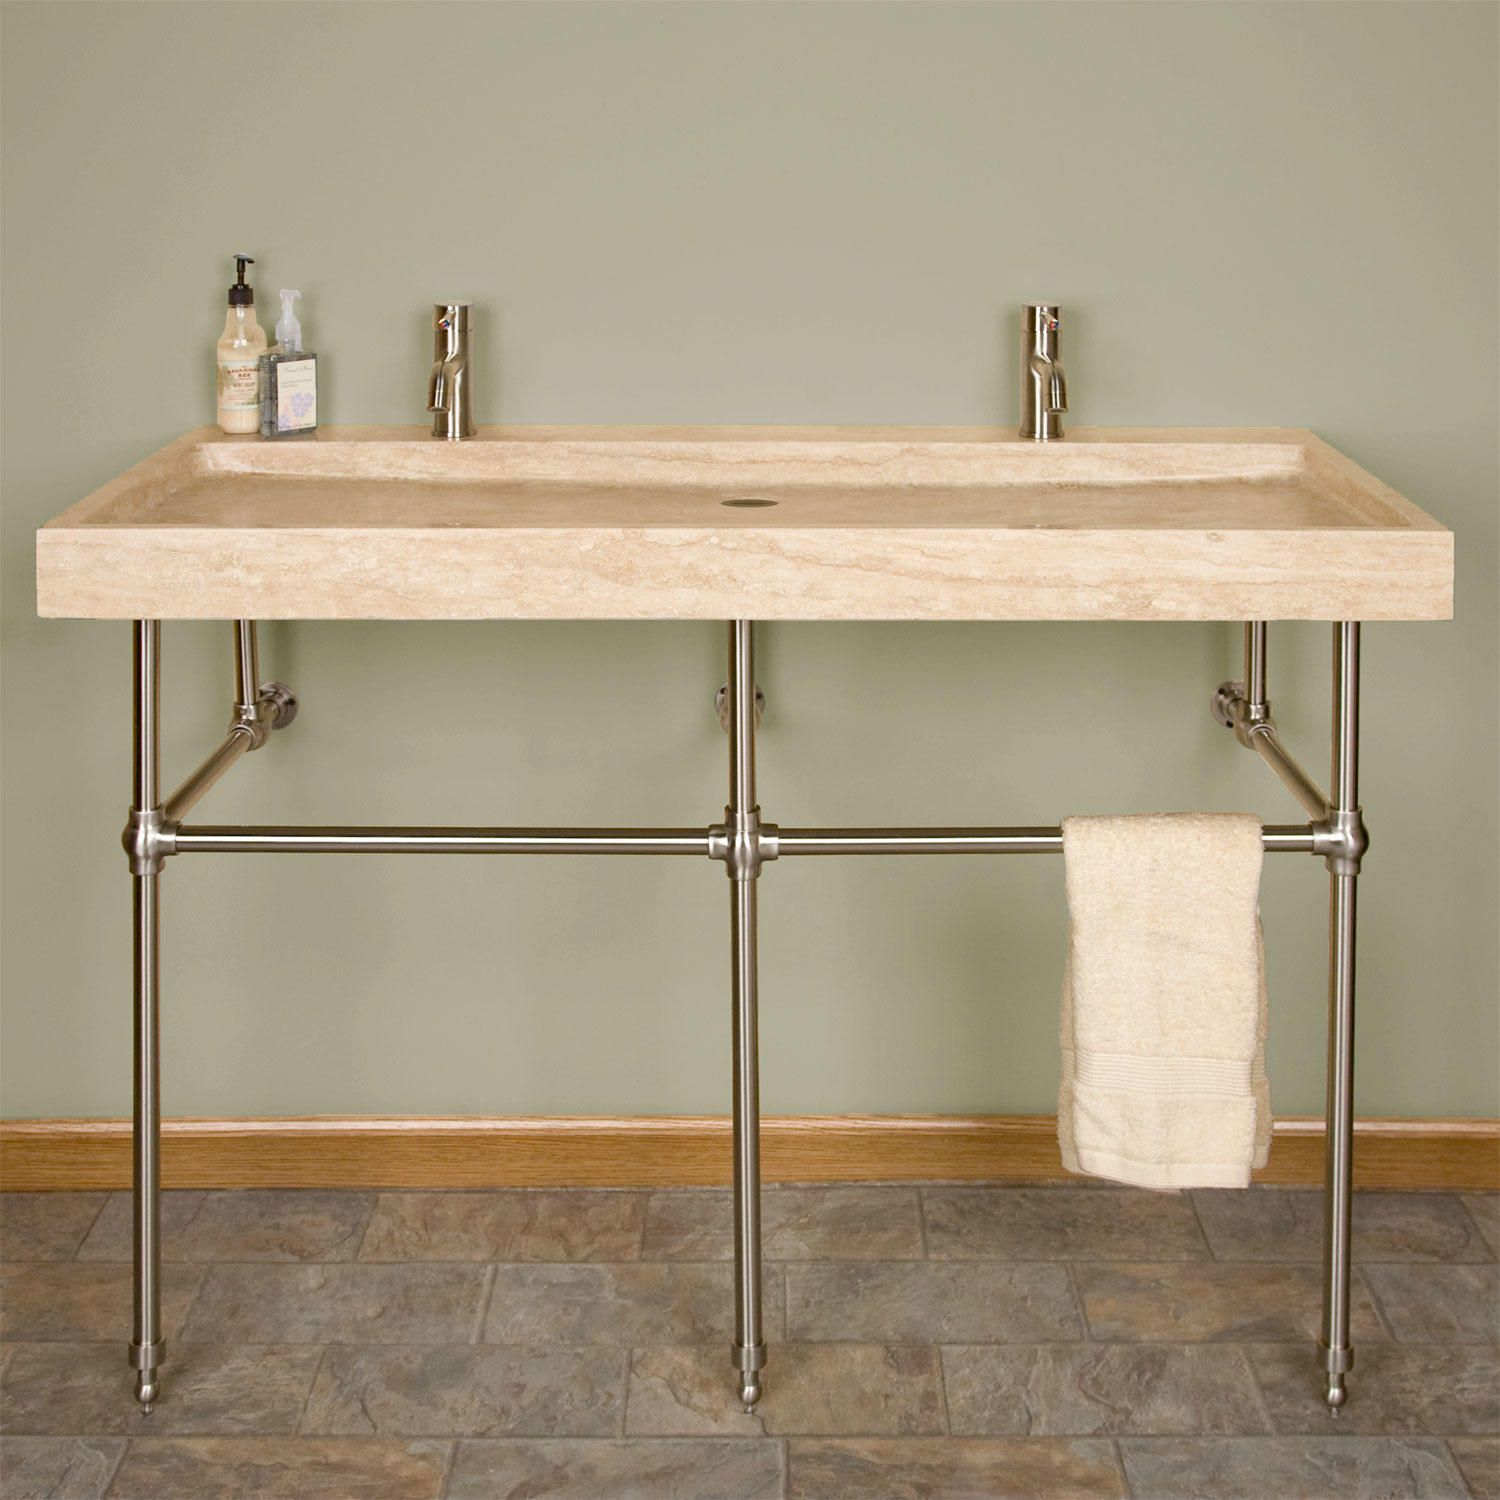 Mason Porcelain Console Sink with Brass Stand Sinks Consoles